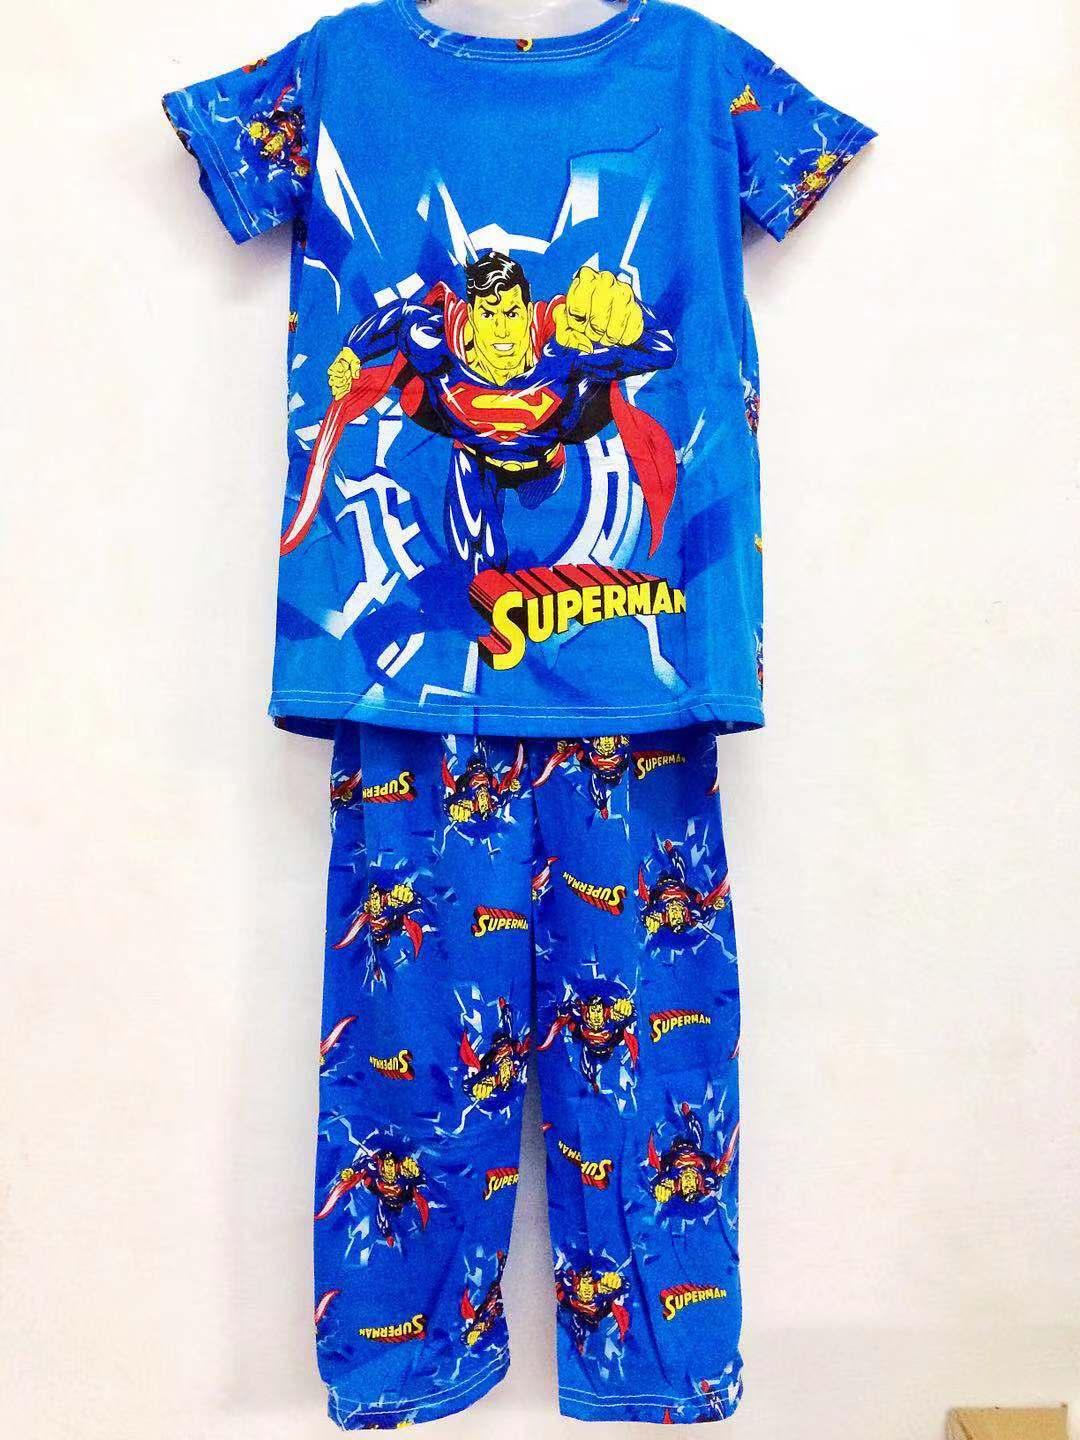 Xuebami Boys Sleepwear Pajama Set For Kids (superman) By Xuebamiph.